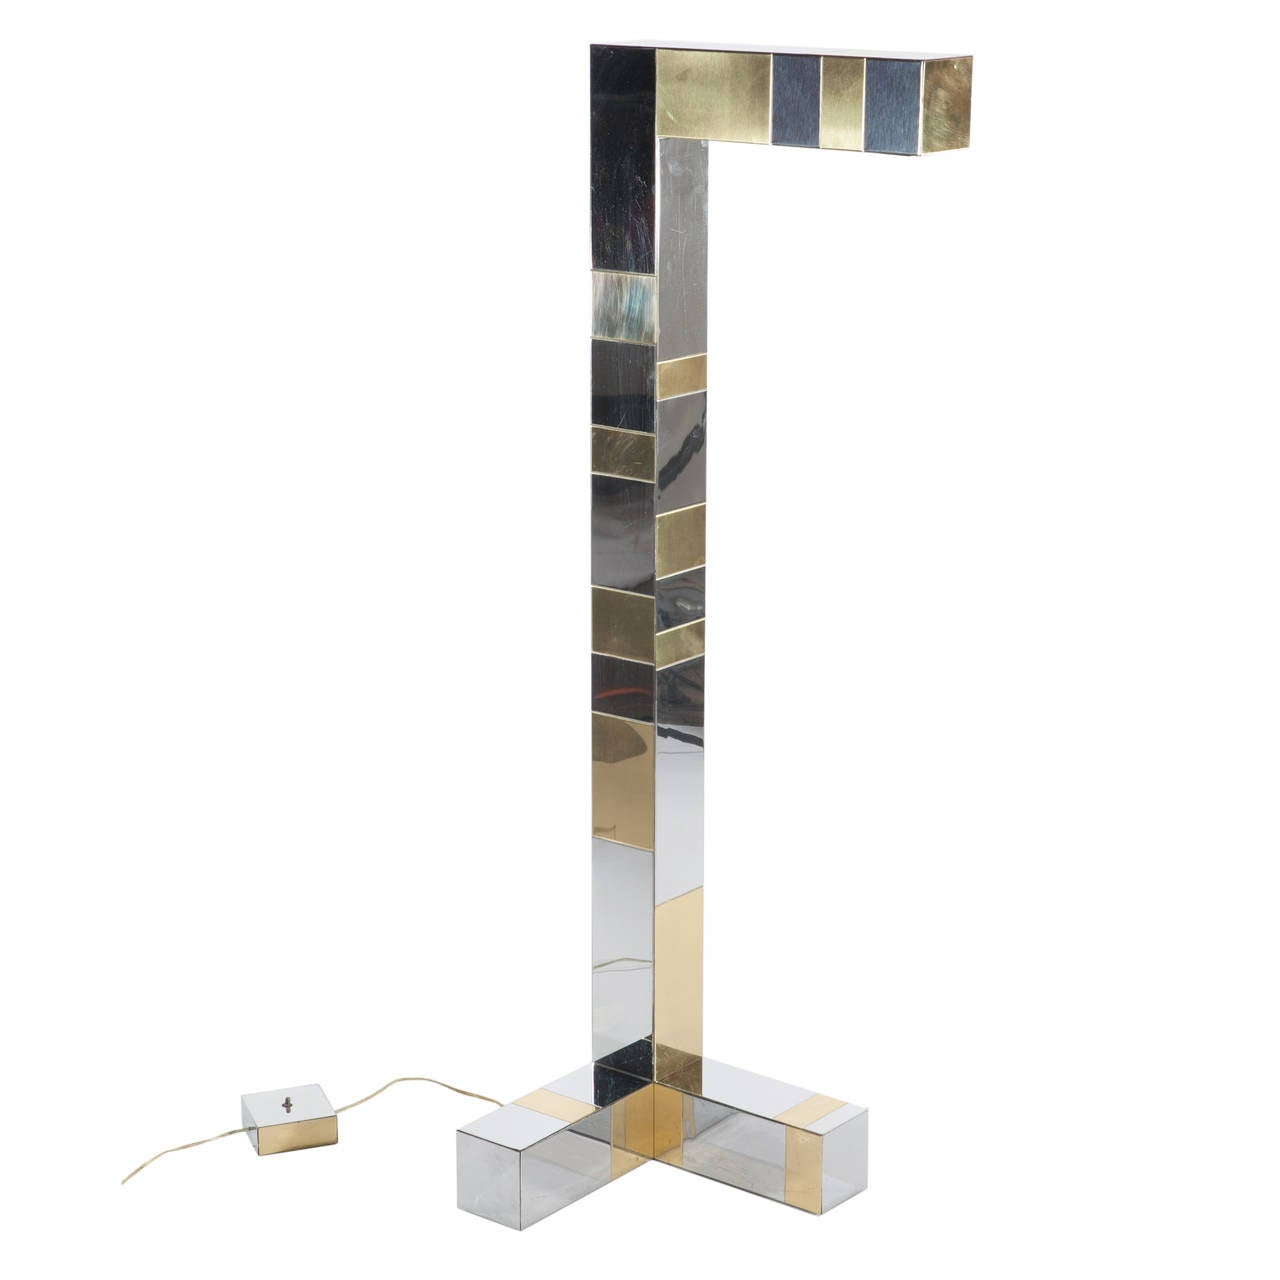 Sculptural floor lamp from Evans' blockbuster